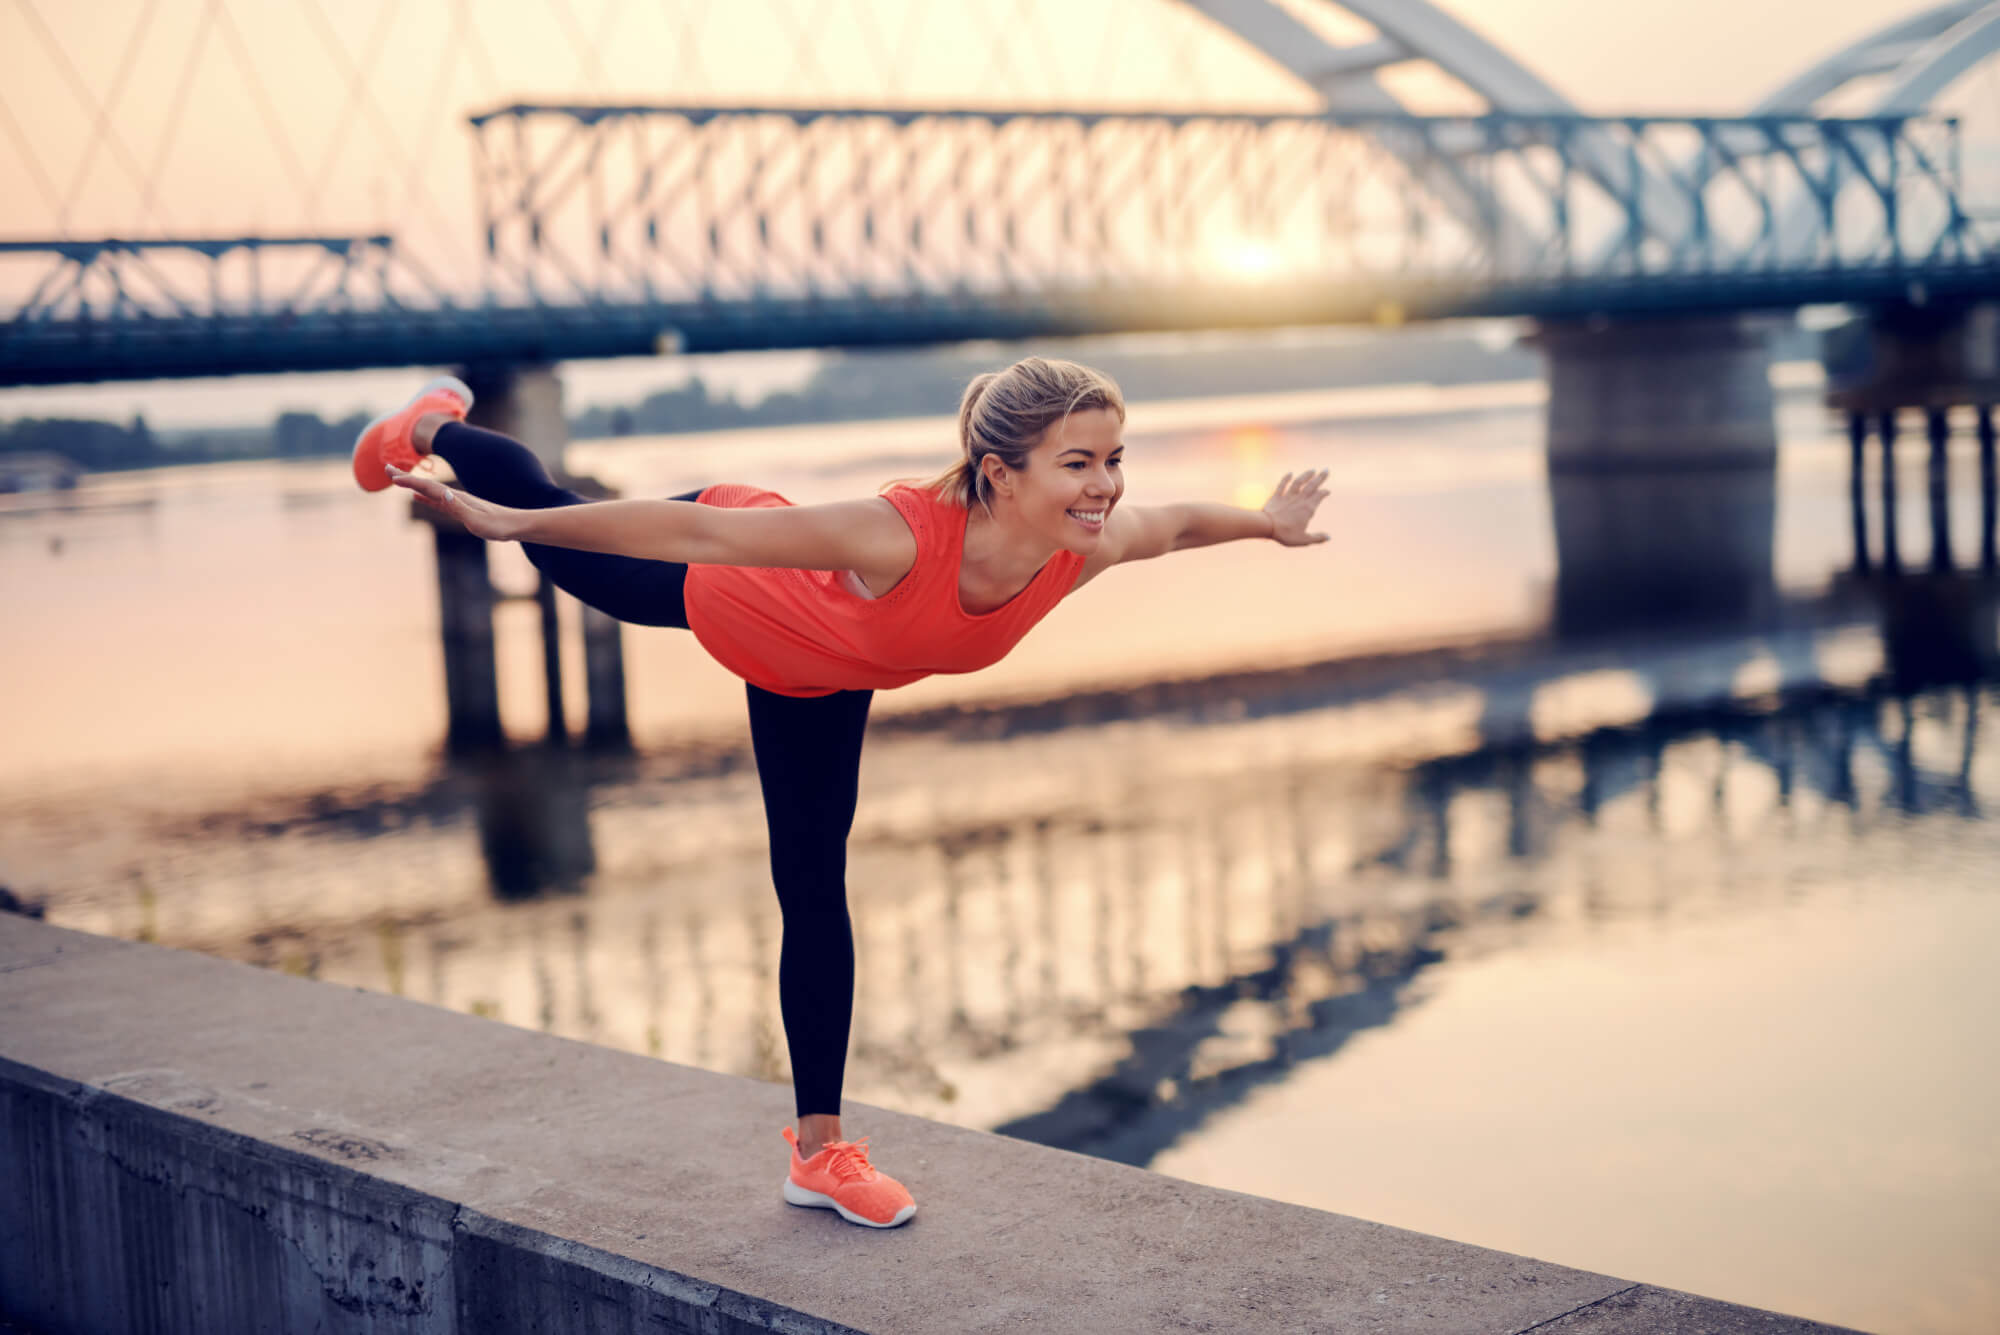 How to Do Muscular Endurance Exercises to Increase Your Energy?